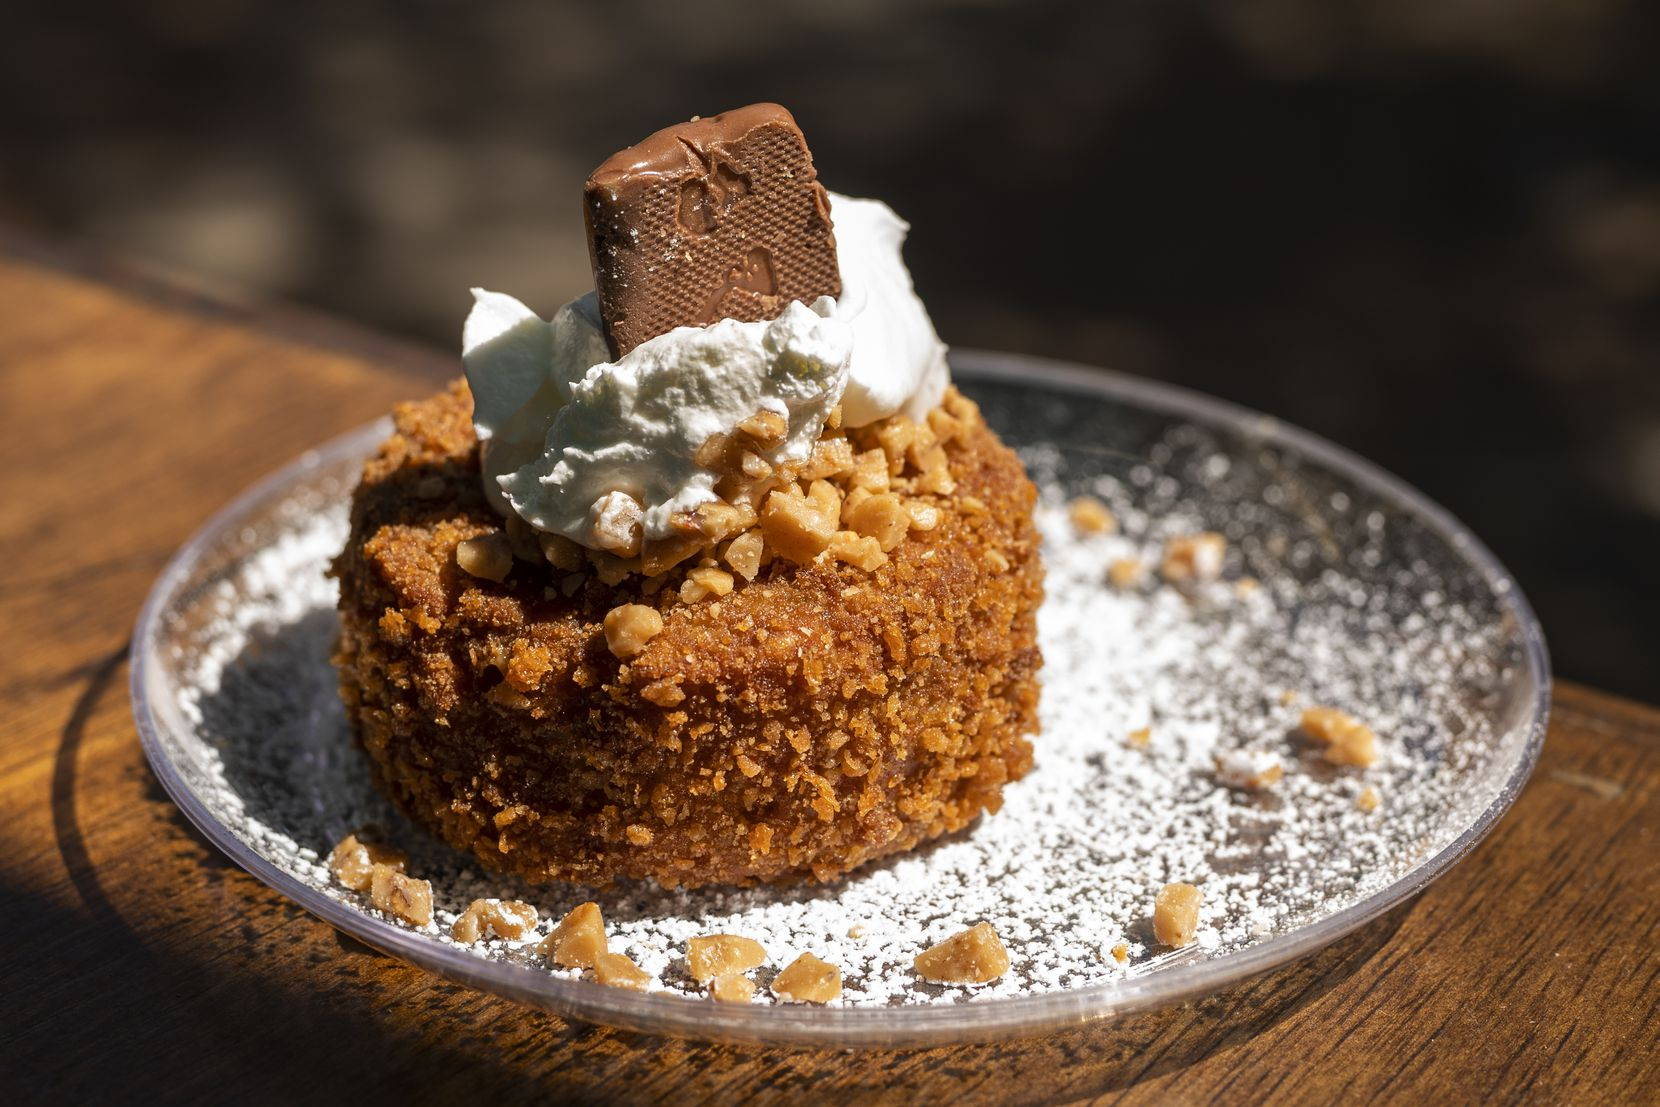 Fernie's Fried Toffee Coffee Crunch Cake is one of the 10 Big Tex Choice Award finalists at the State Fair of Texas in 2021.